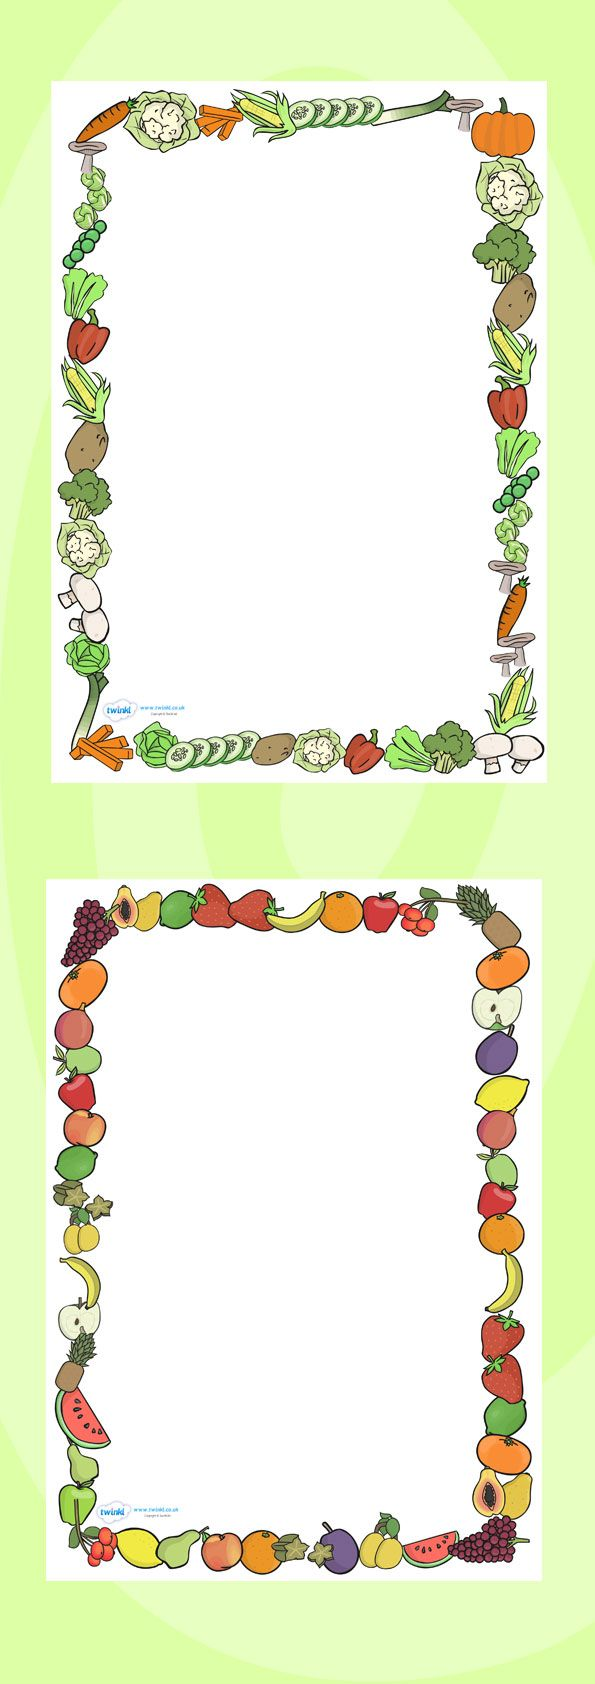 Carrot clipart frame Vegetables Themed Borders Fruits A4